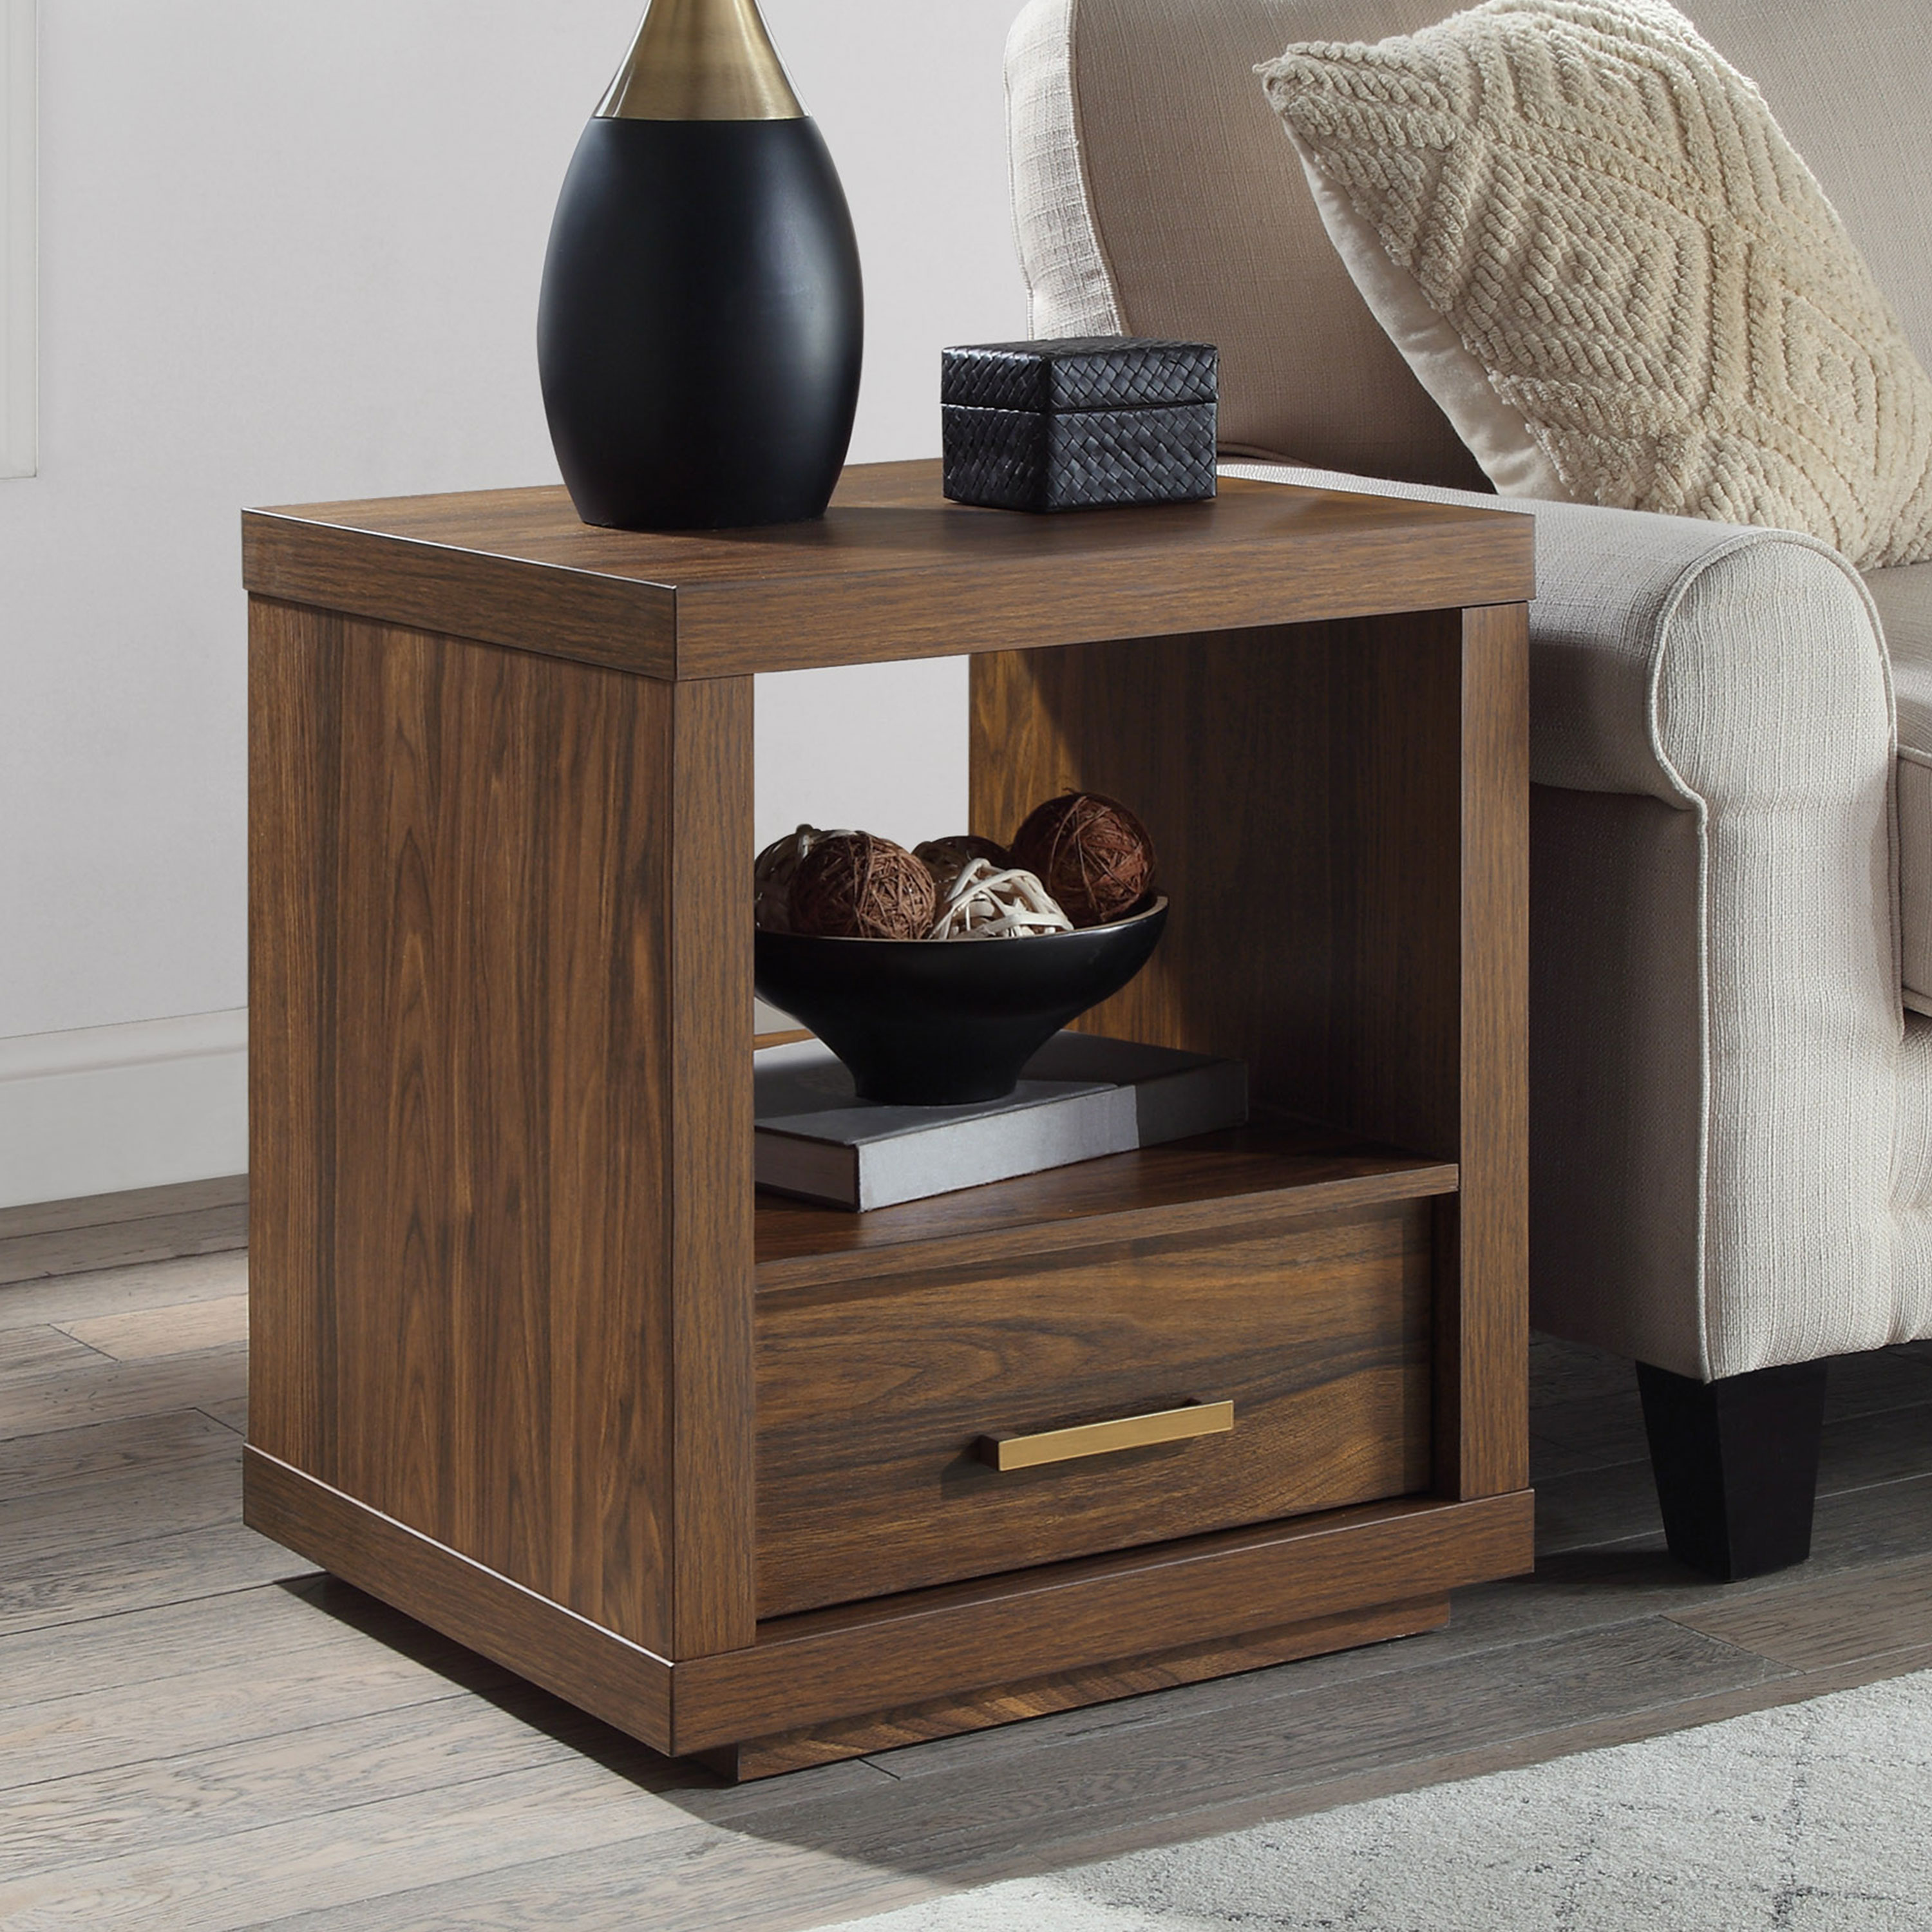 Better Homes Gardens Steele End Table Only 30 73 Edealinfo Com